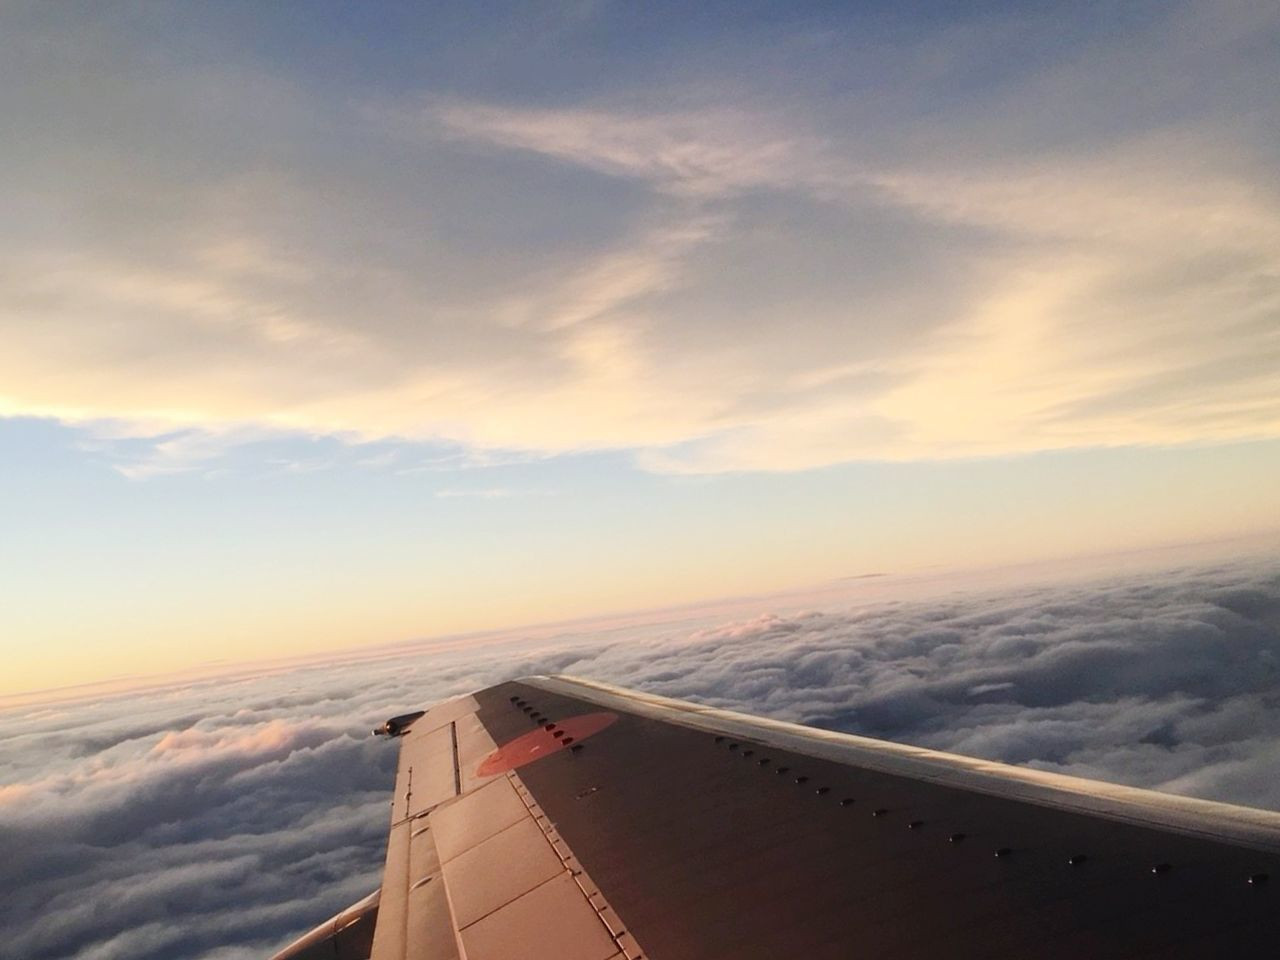 airplane, transportation, cloud - sky, sky, air vehicle, journey, mode of transport, aerial view, aircraft wing, cloudscape, airplane wing, no people, travel, beauty in nature, nature, jet engine, sunset, scenics, mid-air, outdoors, flying, vehicle part, day, water